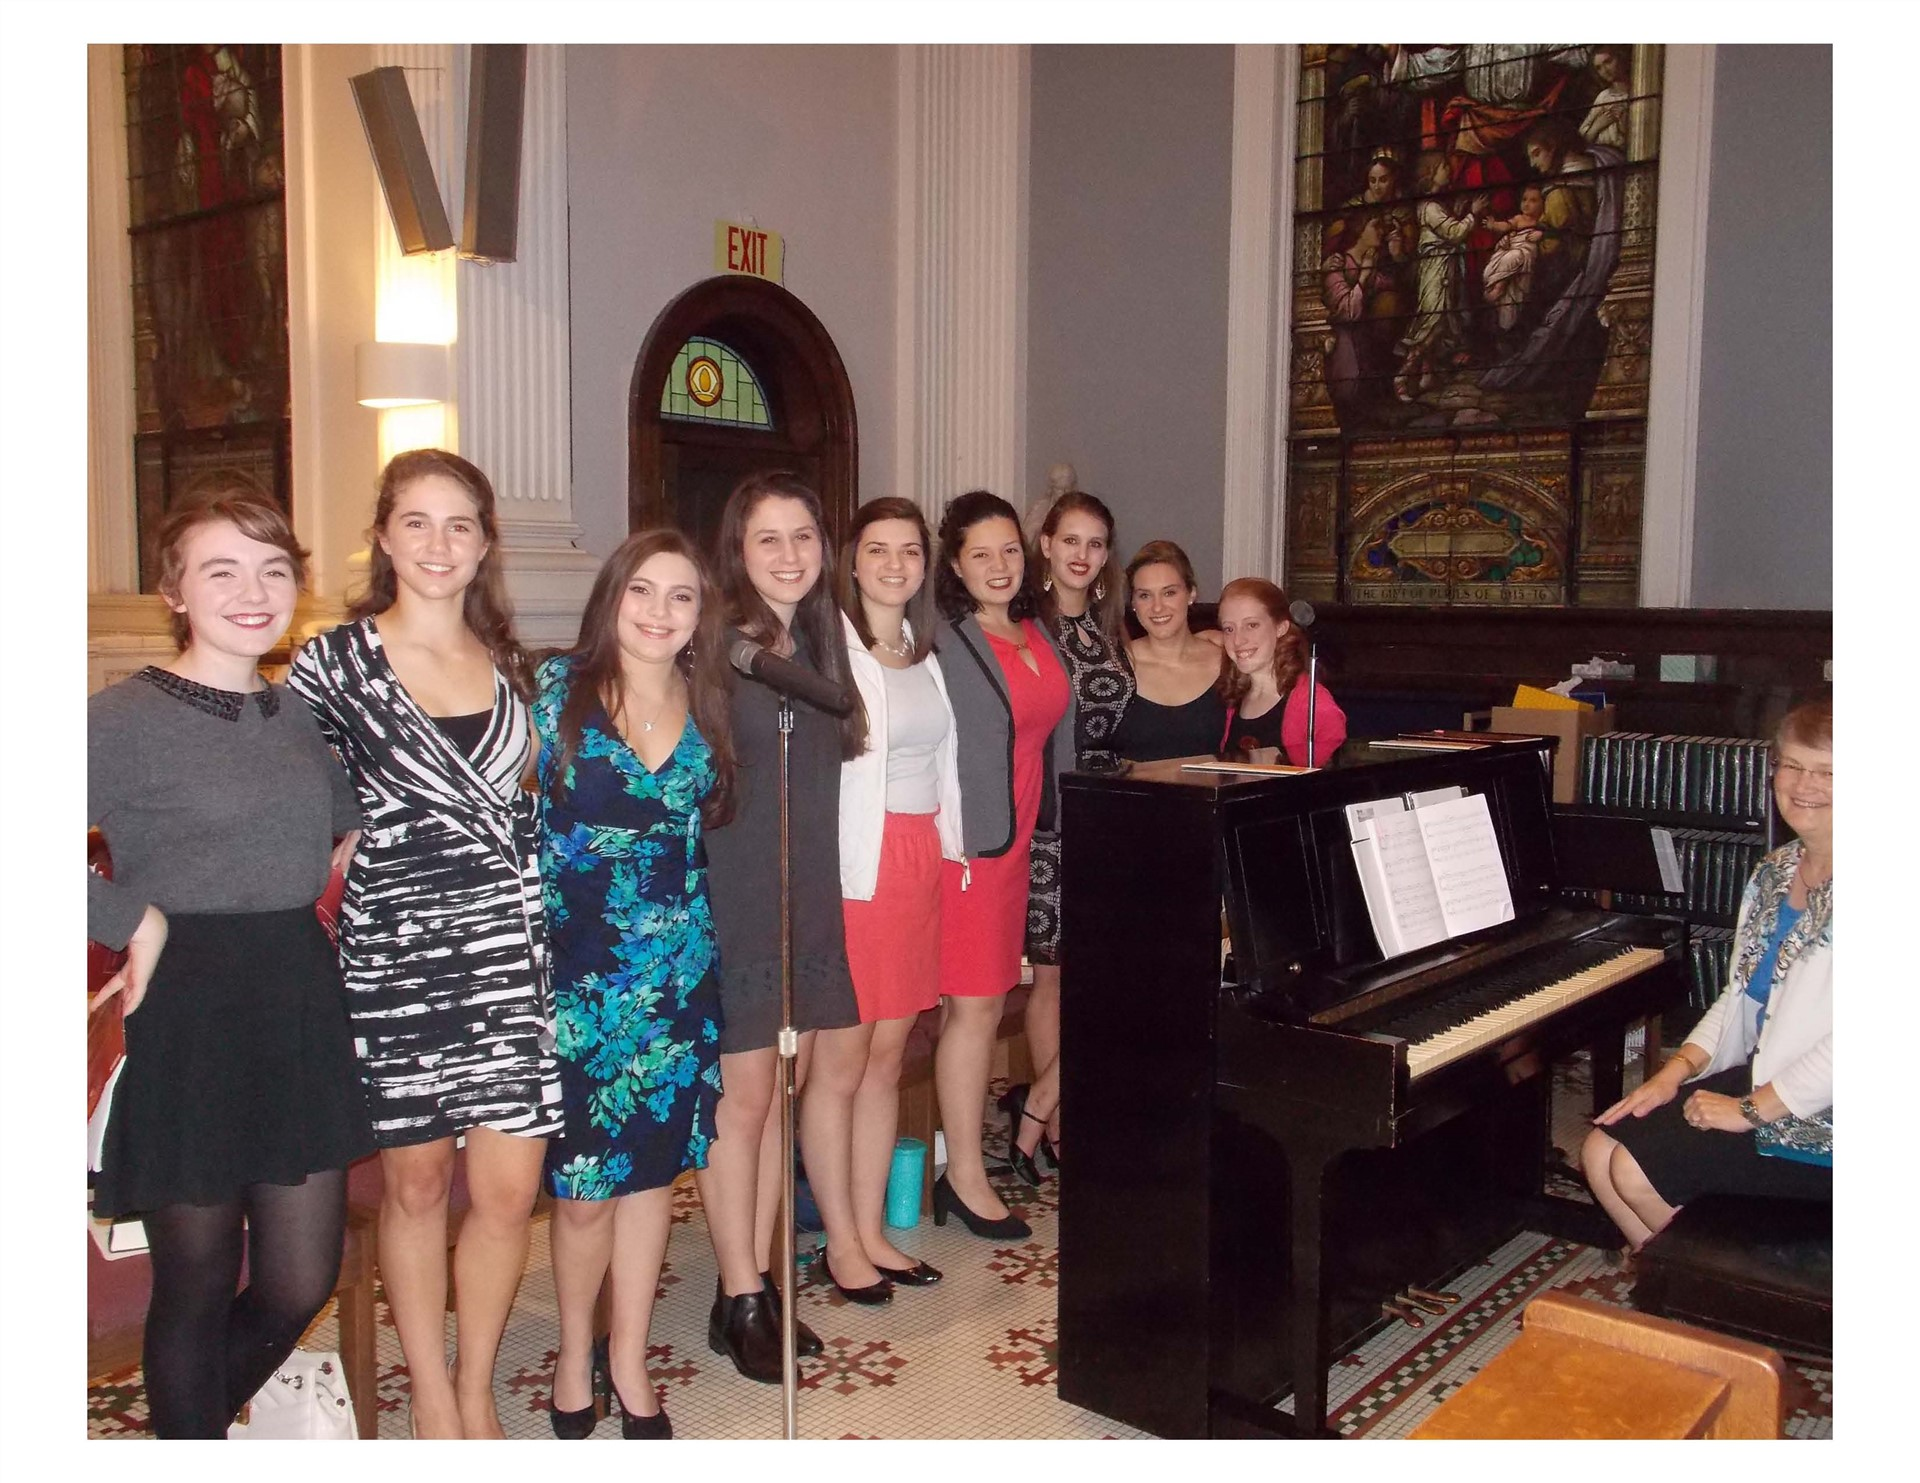 The St. Ursula Vocal Ensemble sings for the Alumnae Reunion Mass